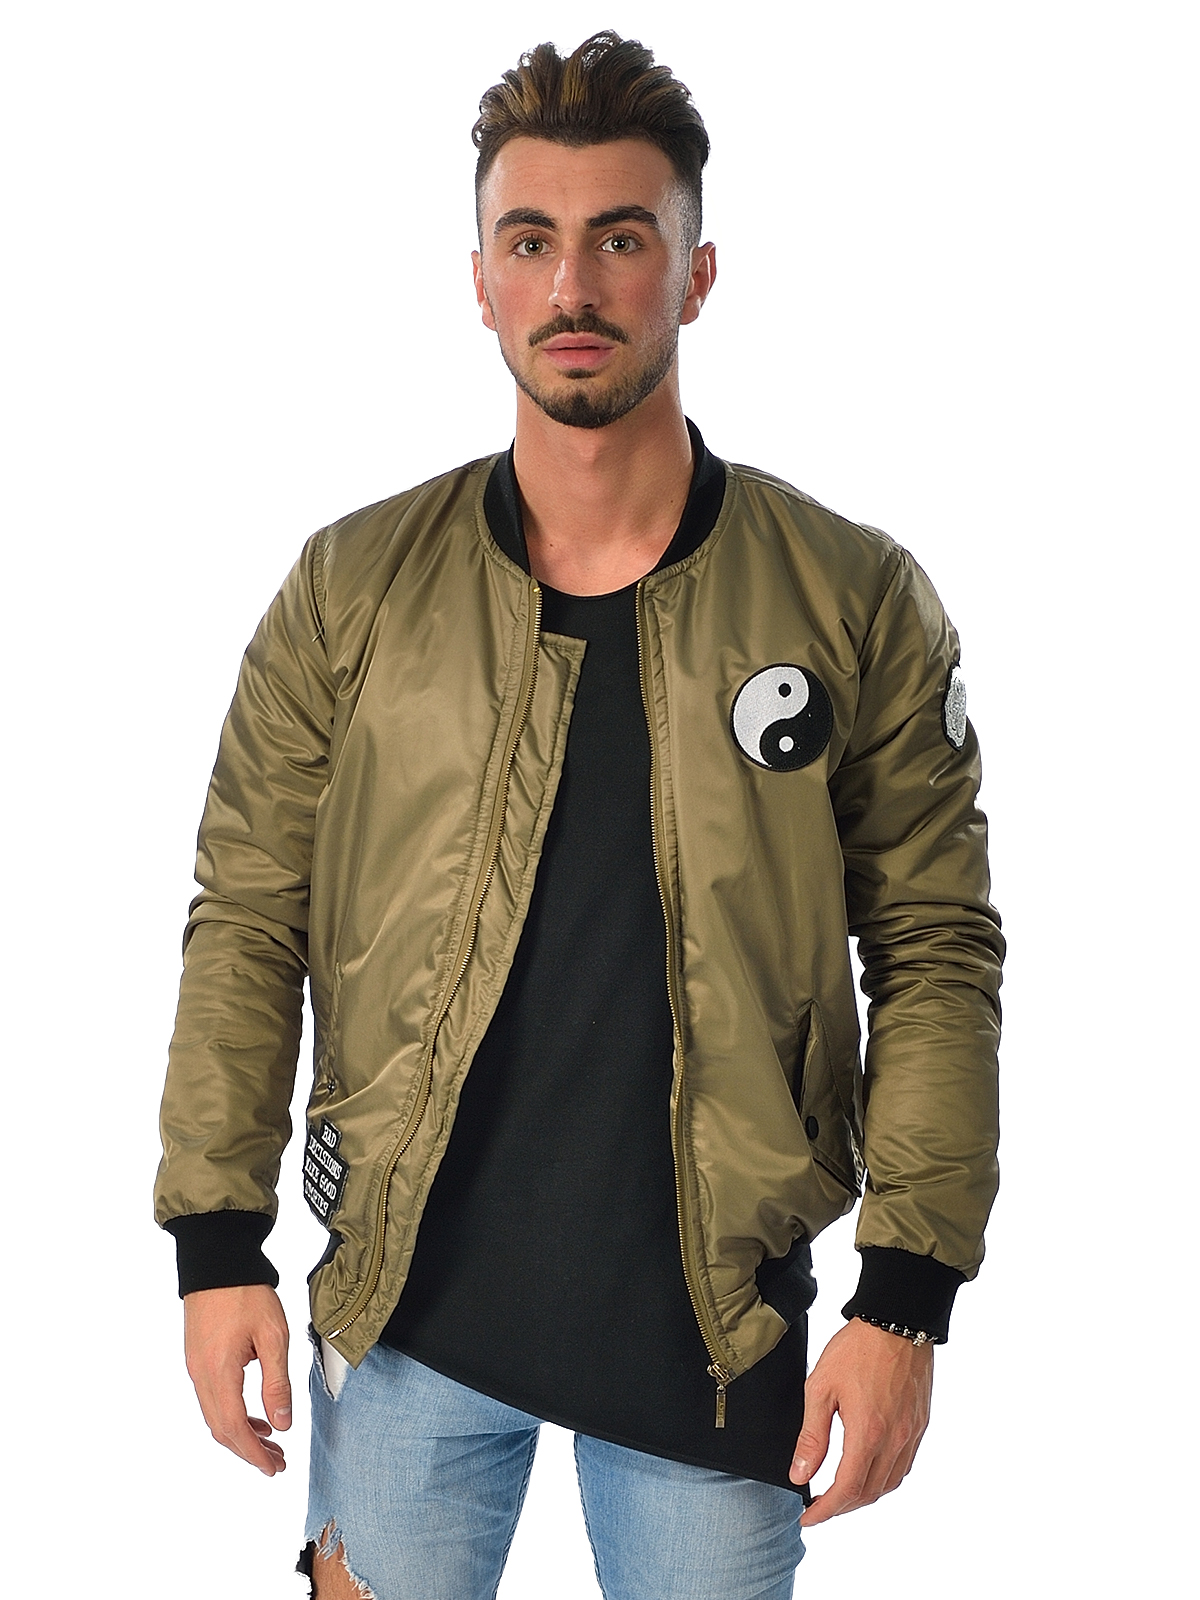 Shop our range of Men's Bomber Jackets. Shop our range of Bomber Jackets from premium brands online at David Jones. Free delivery available.